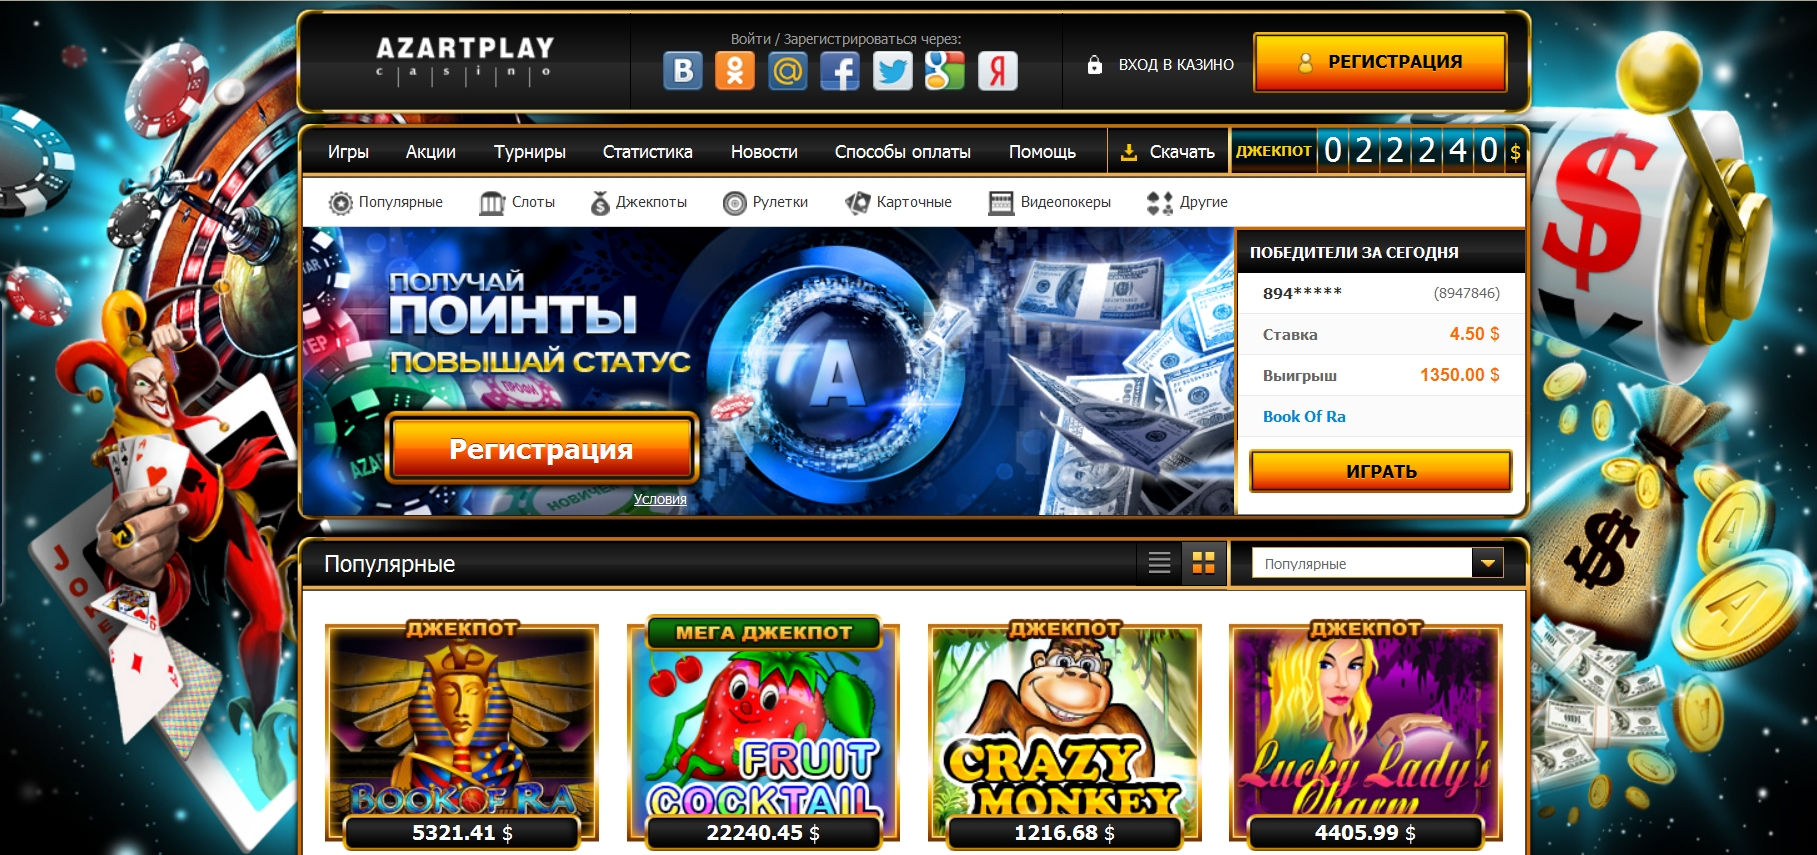 azartplay casino играть онлайн